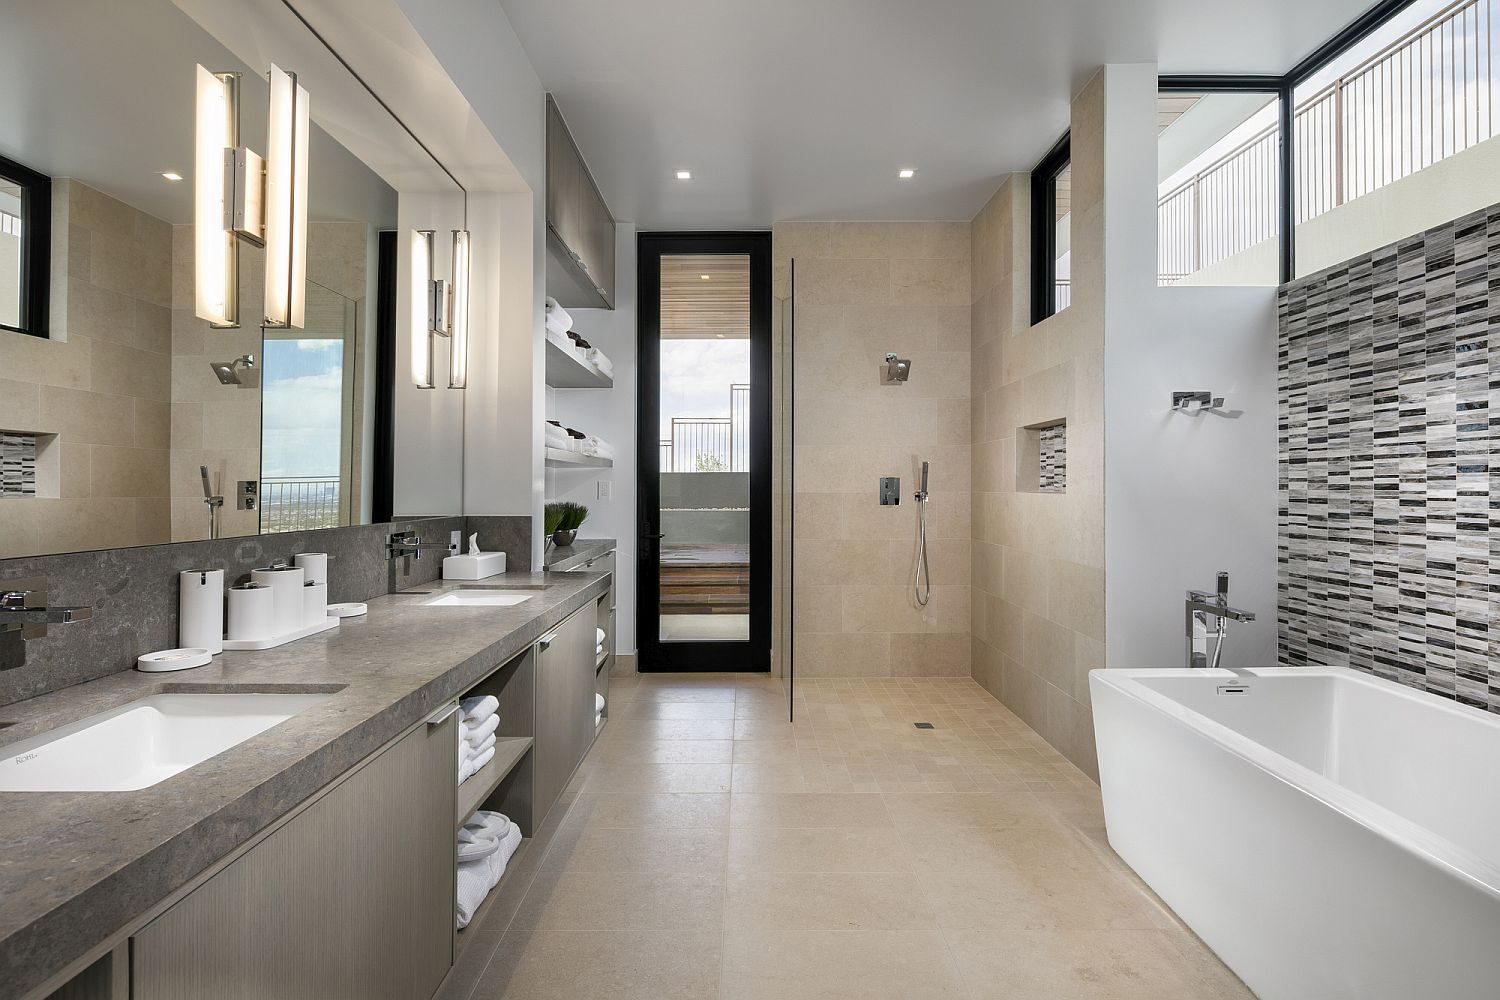 Master bathroom with white bathtub and vanity with ample storage